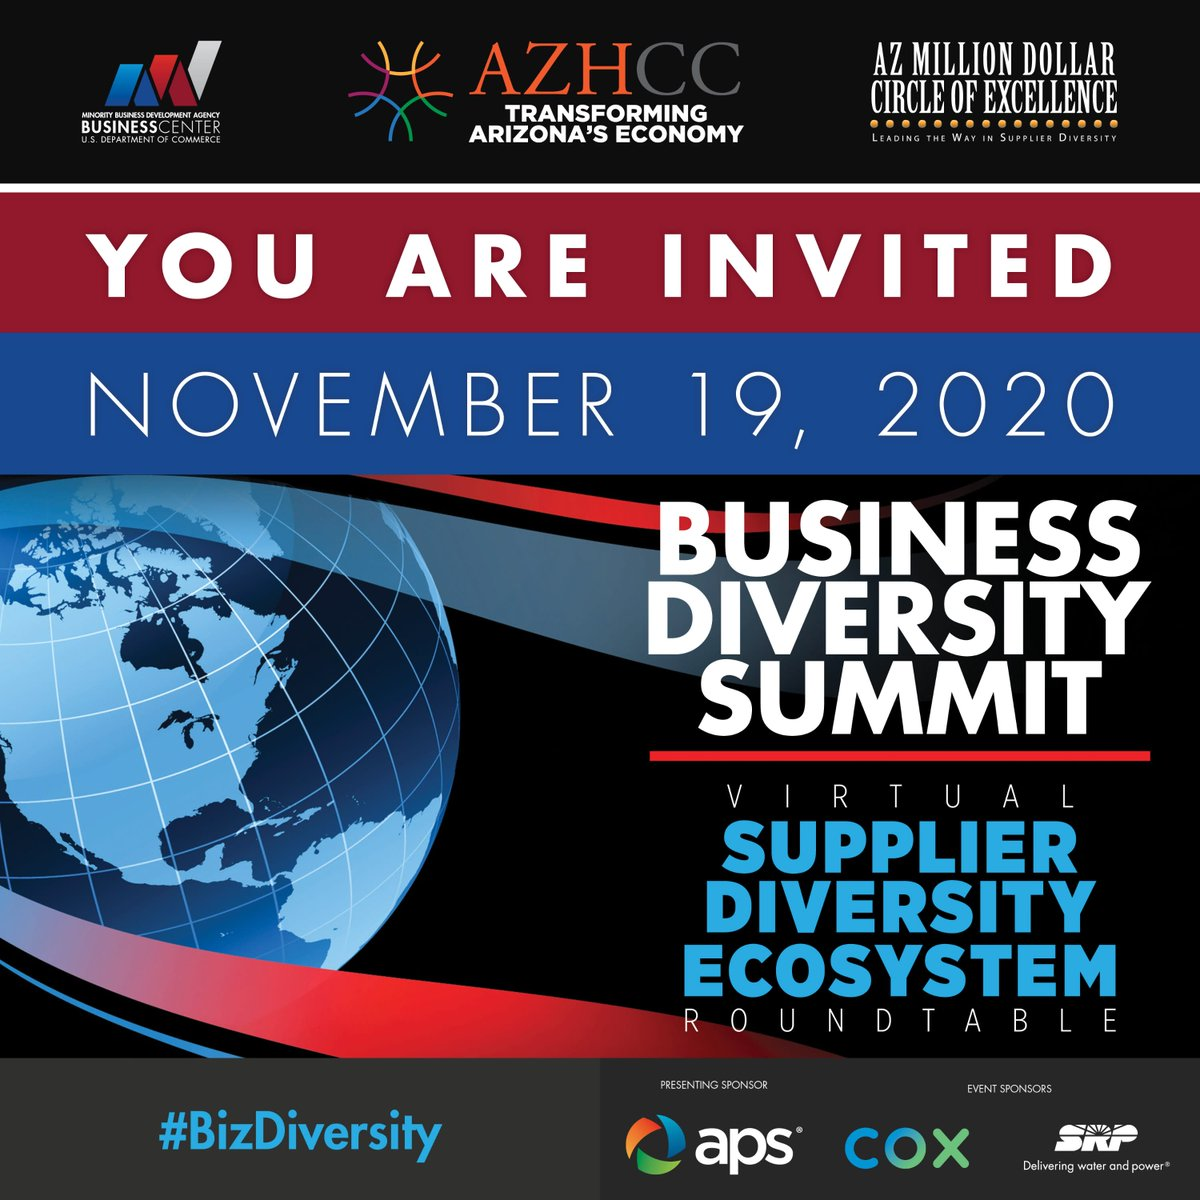 You're Invited to attend the Arizona Hispanic Chamber of Commerce Business Diversity Summit & Virtual Supplier Diversity Ecosystem Roundtable TOMORROW at 10AM MT. @AZHCC @PhoenixMBDA @USMBDA @AZHCCMonica @usblackchambers @USHCC @NMSDCHQ   Register here: